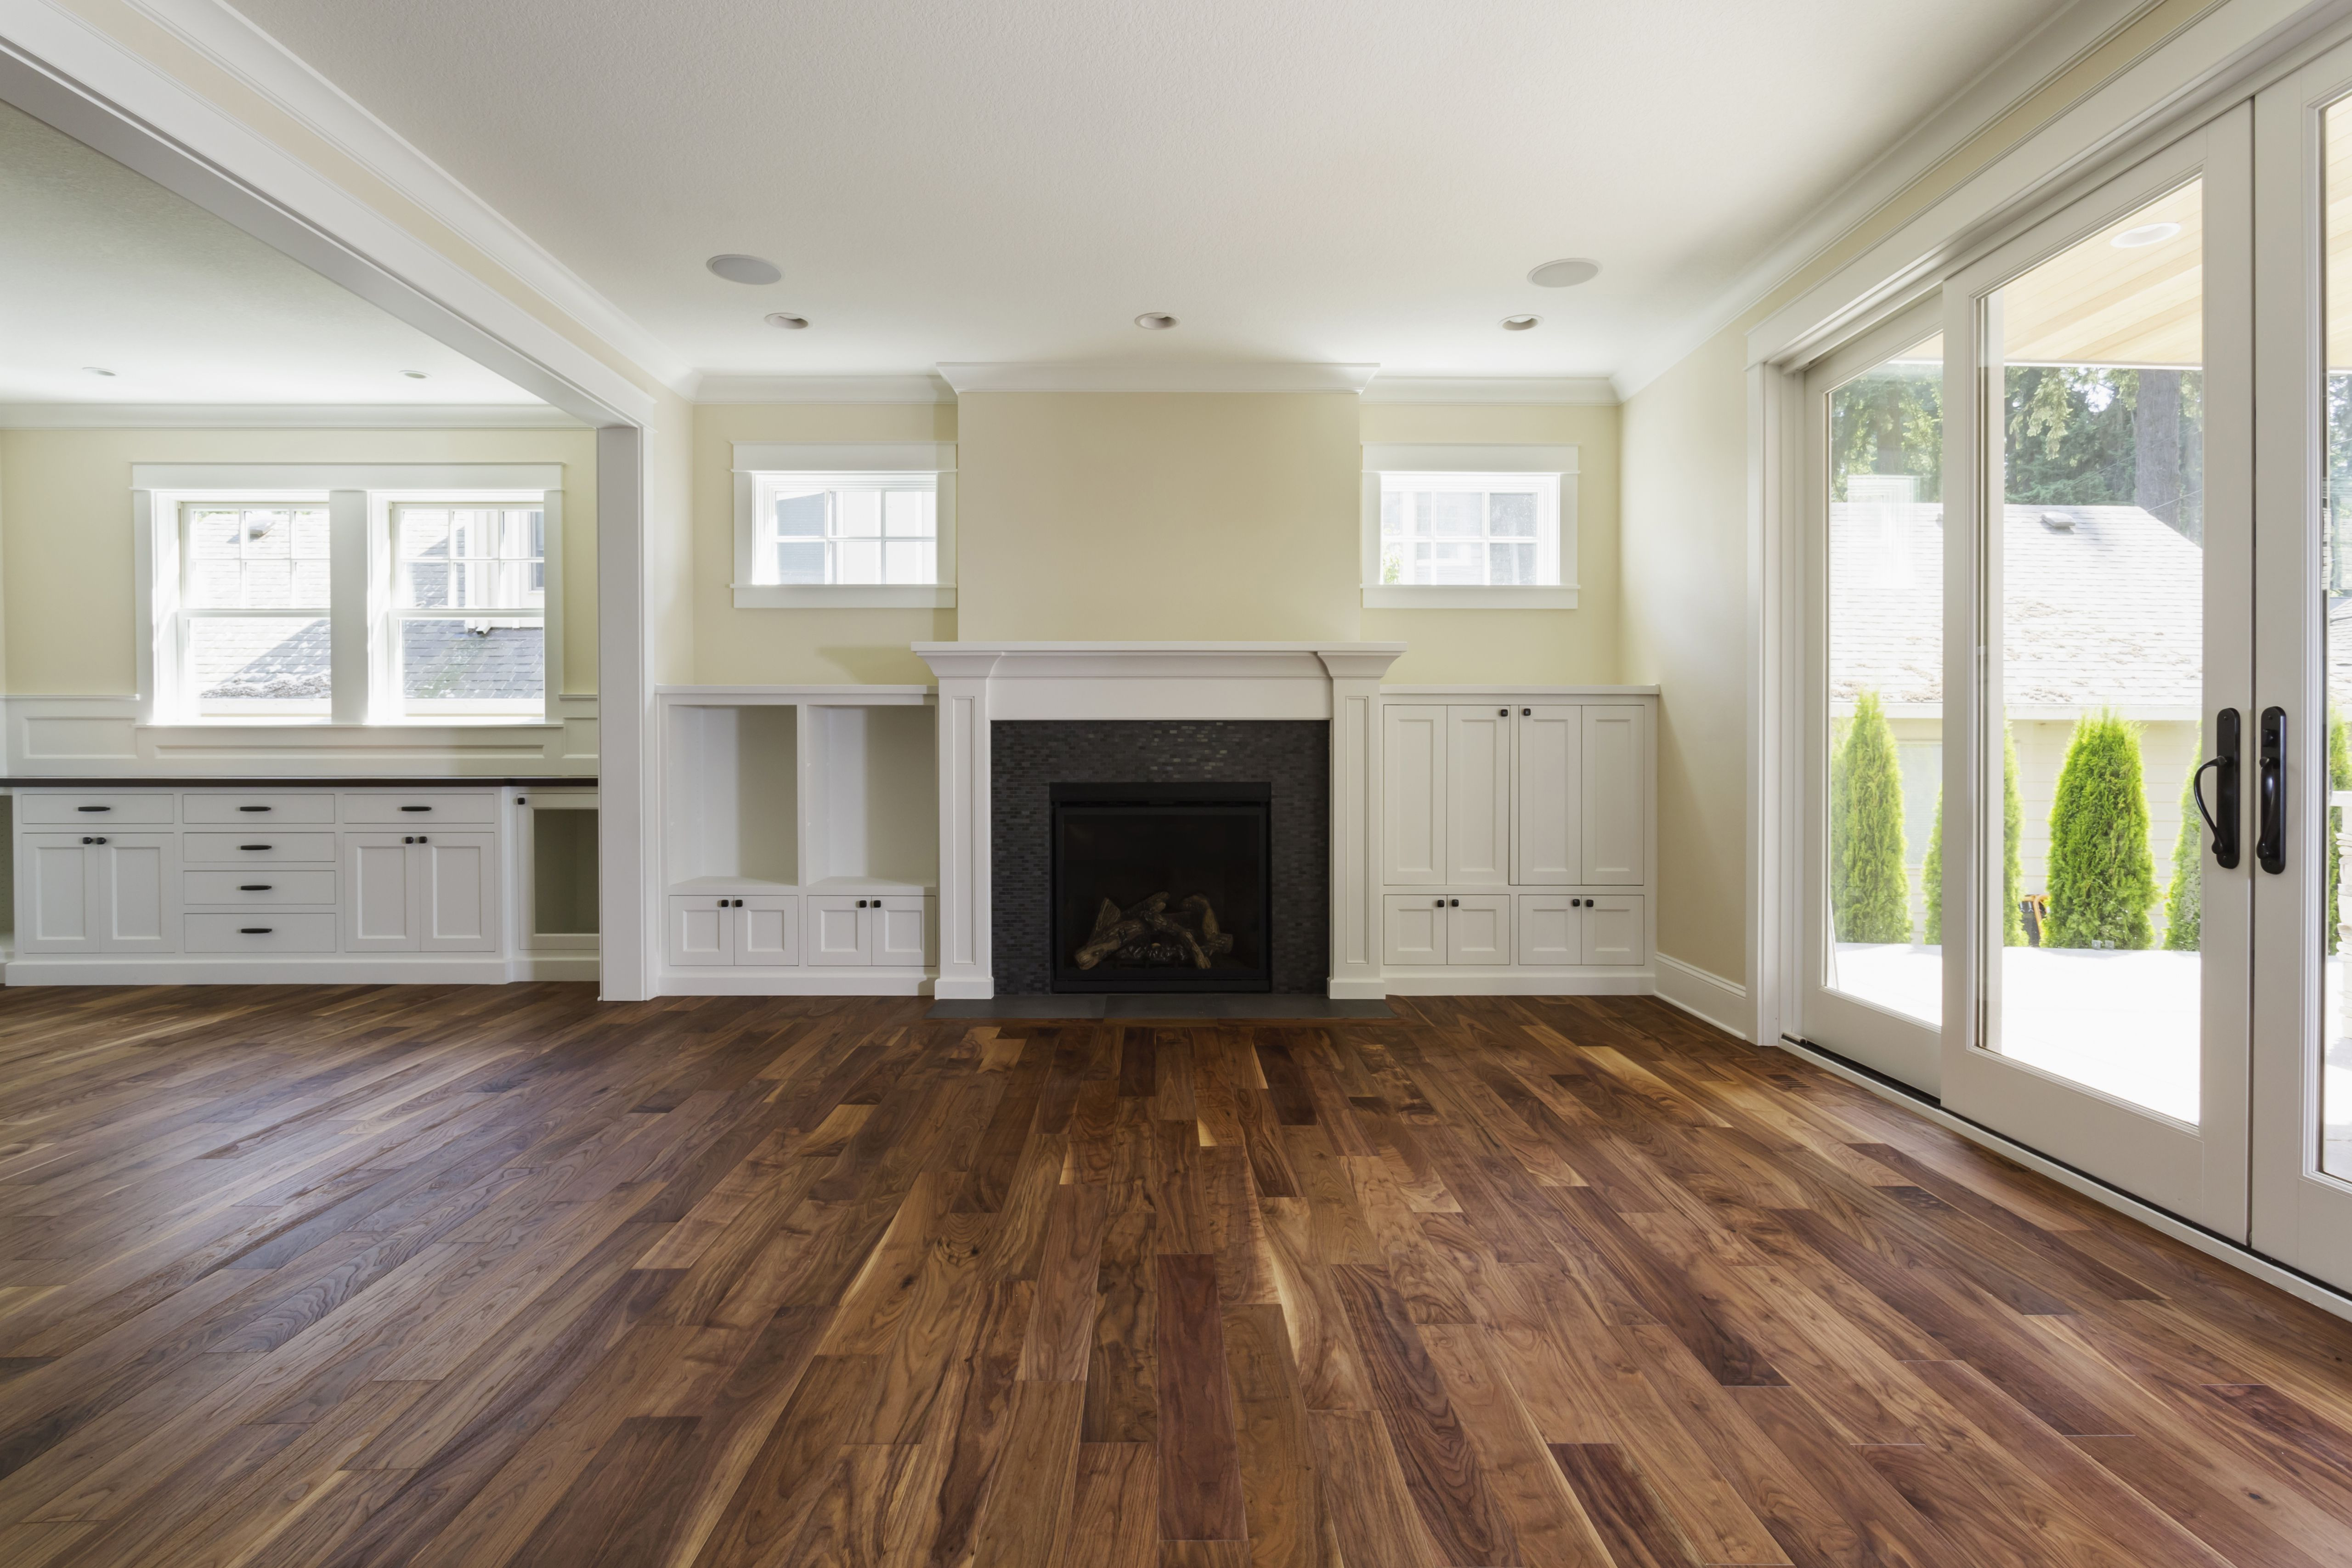 refinish or replace hardwood floors of the pros and cons of prefinished hardwood flooring pertaining to fireplace and built in shelves in living room 482143011 57bef8e33df78cc16e035397